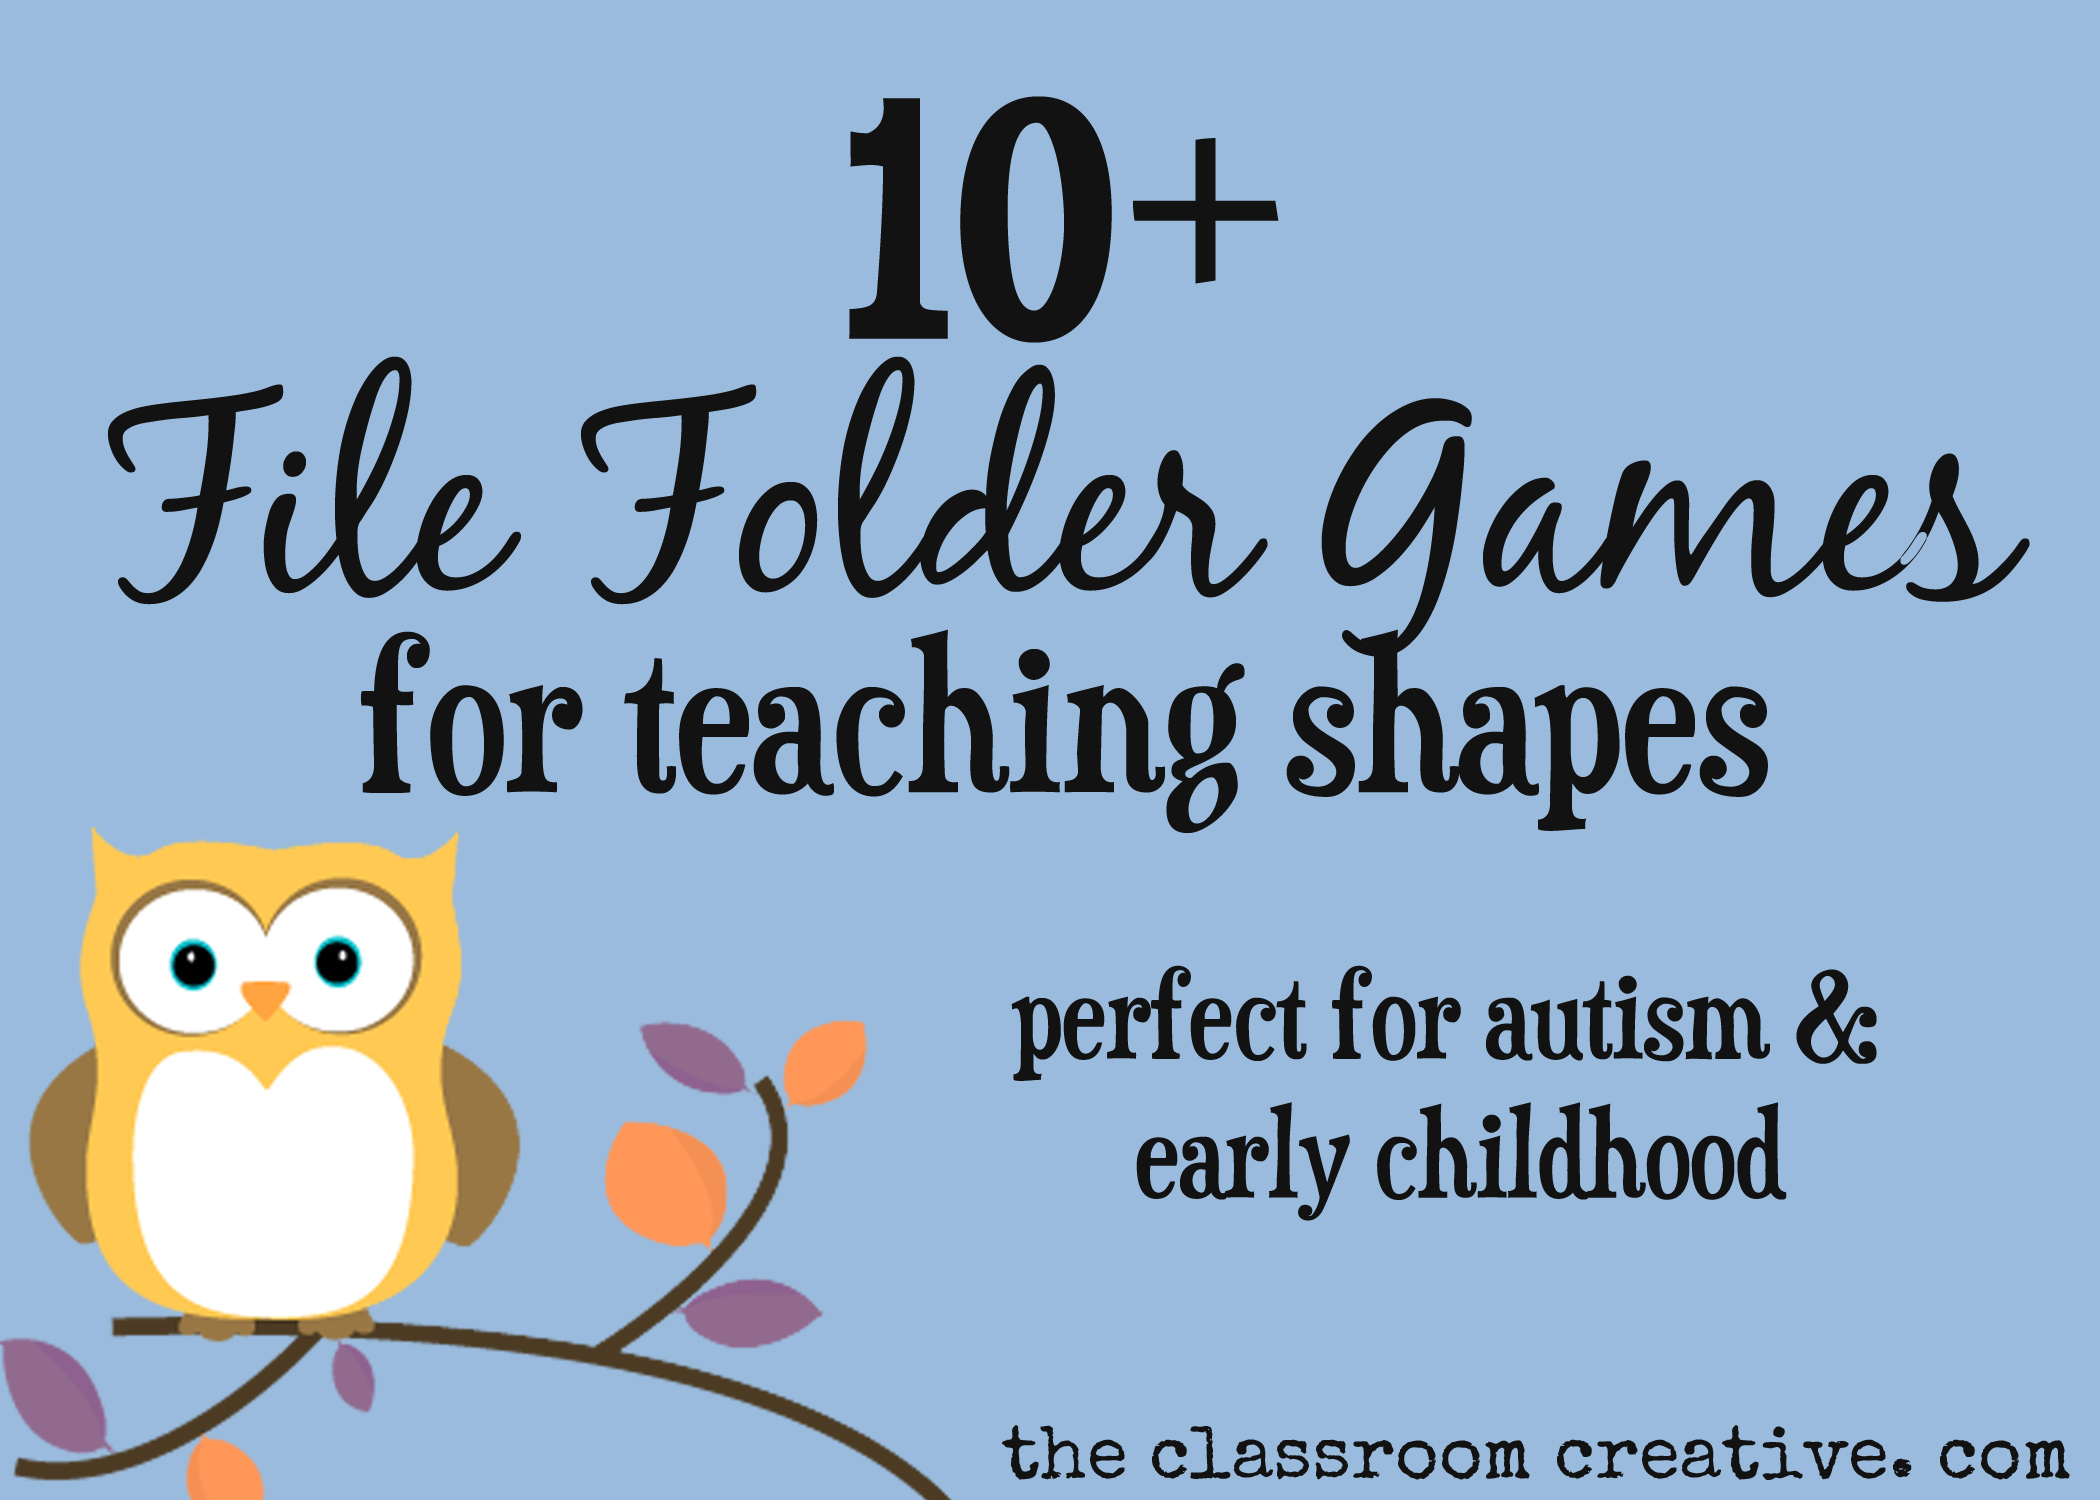 File Folder Games For Teaching Shapes - Free Printable Folder Games